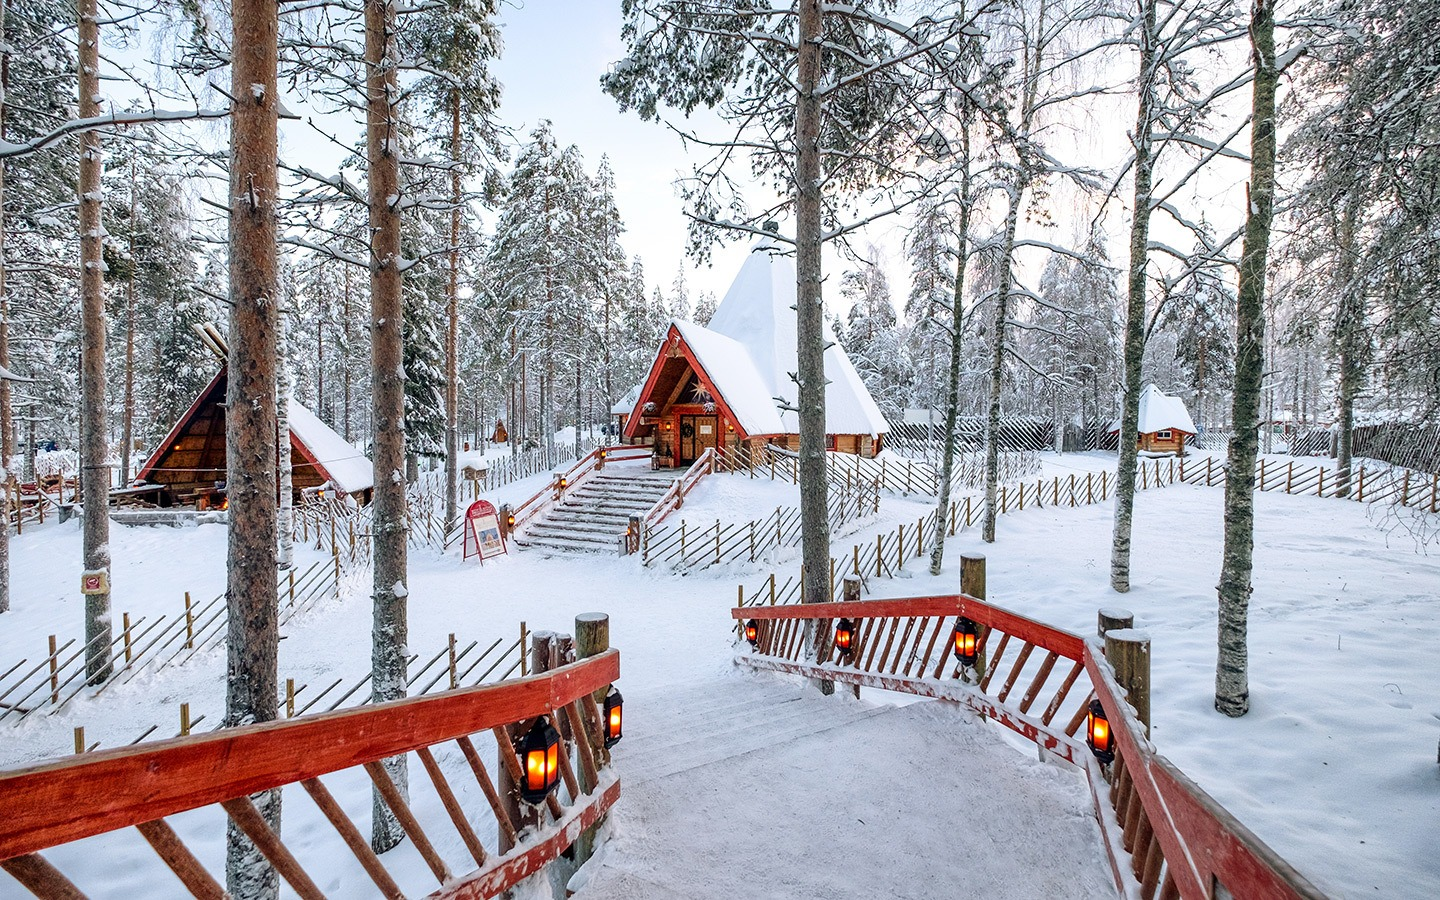 What does it cost? 5 days in Lapland